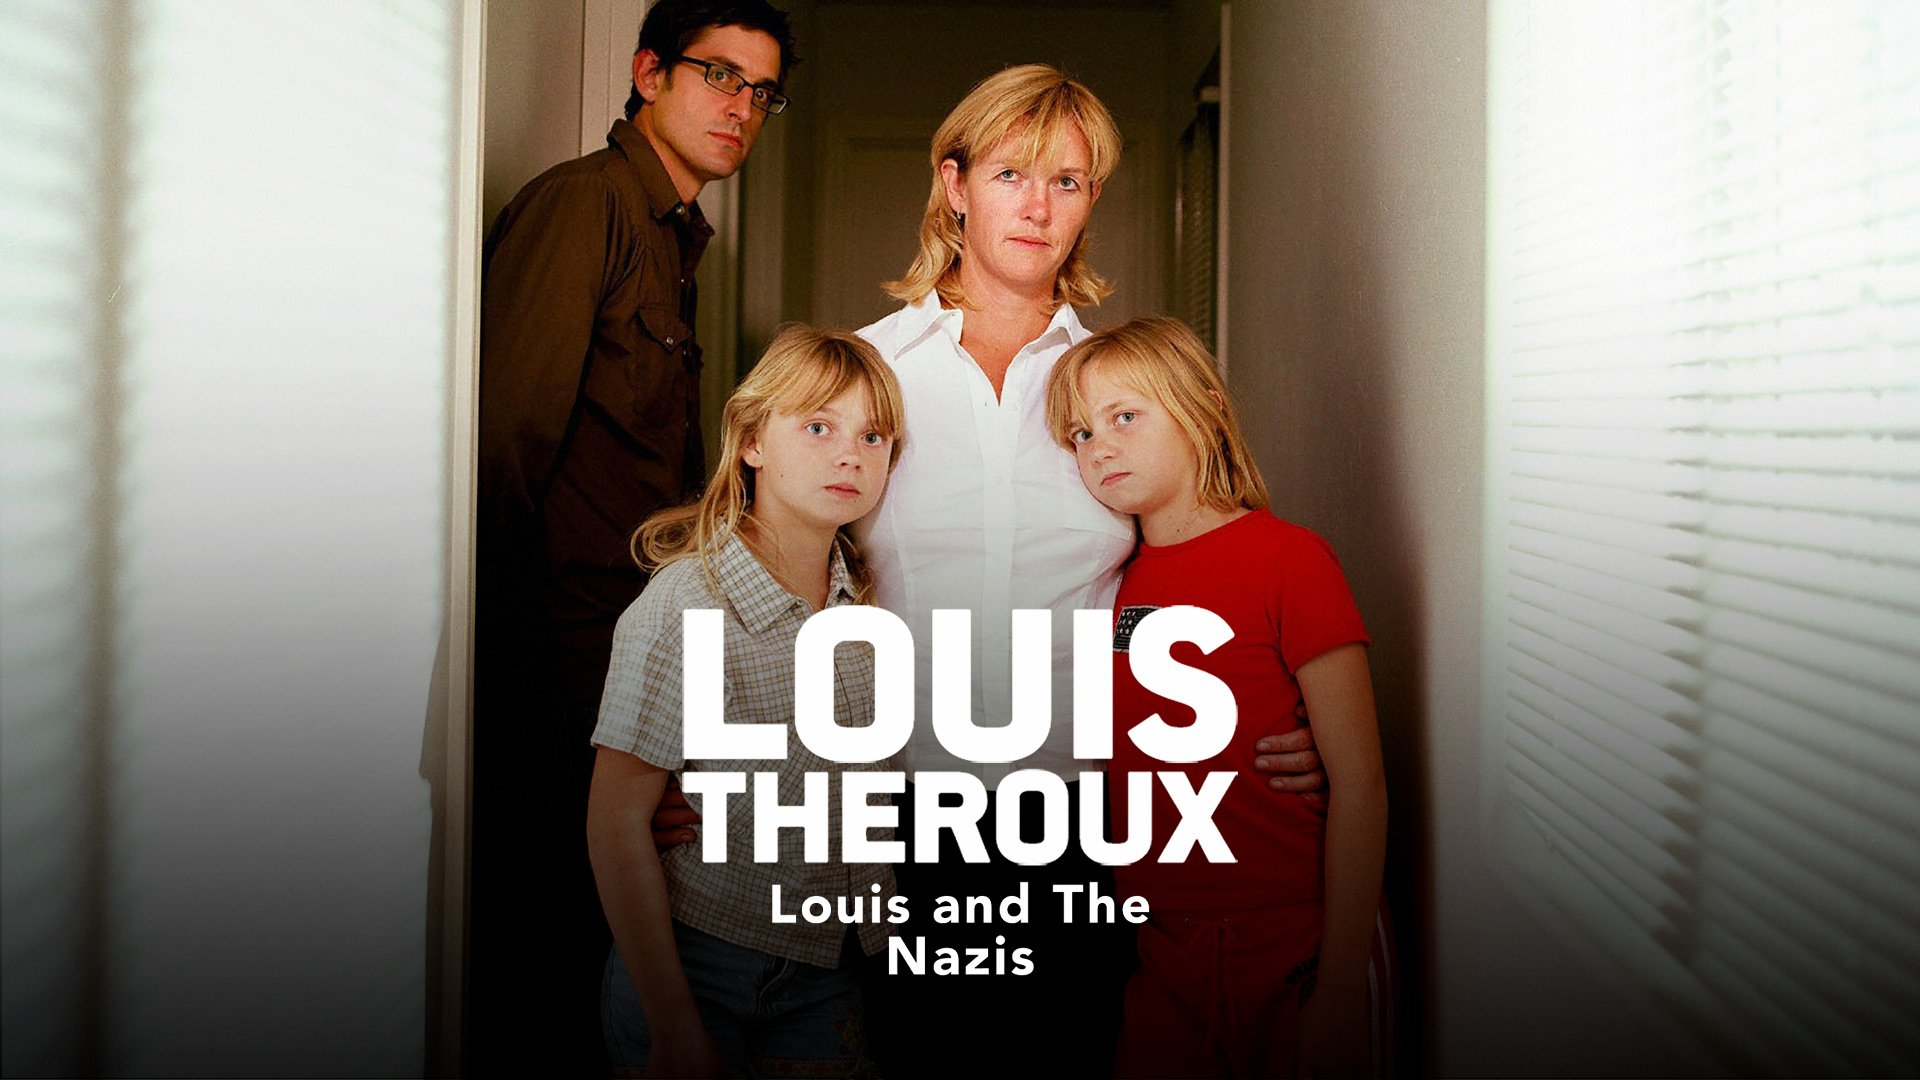 Louis Theroux: Louis and the Nazis on BritBox UK